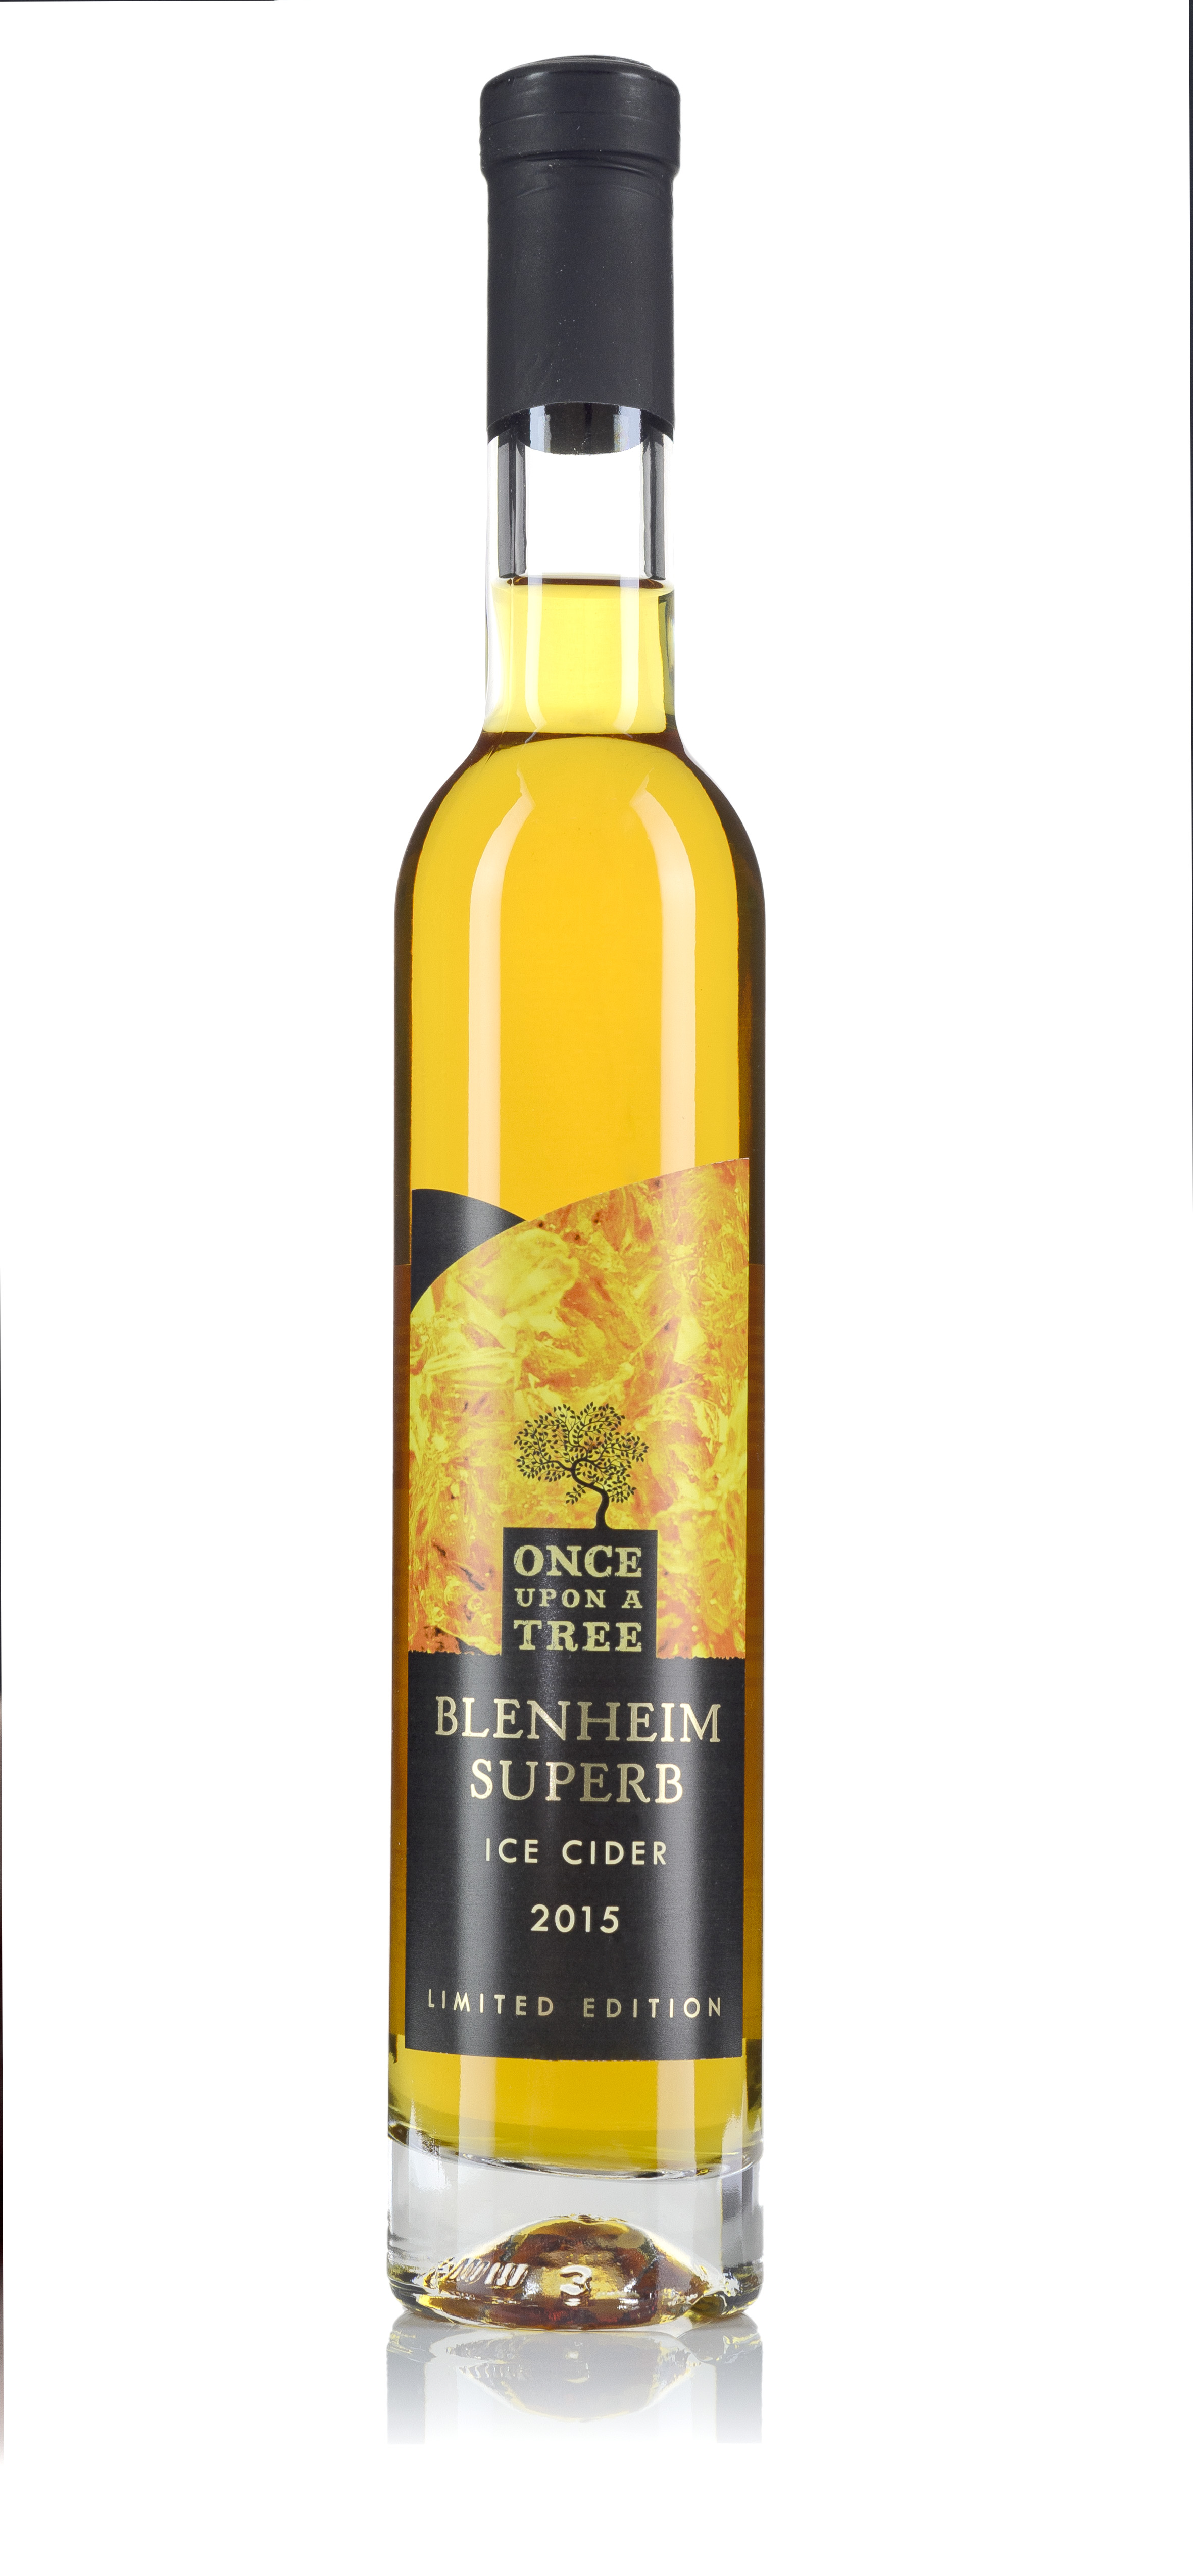 Blenhiem Superb Ice Cider